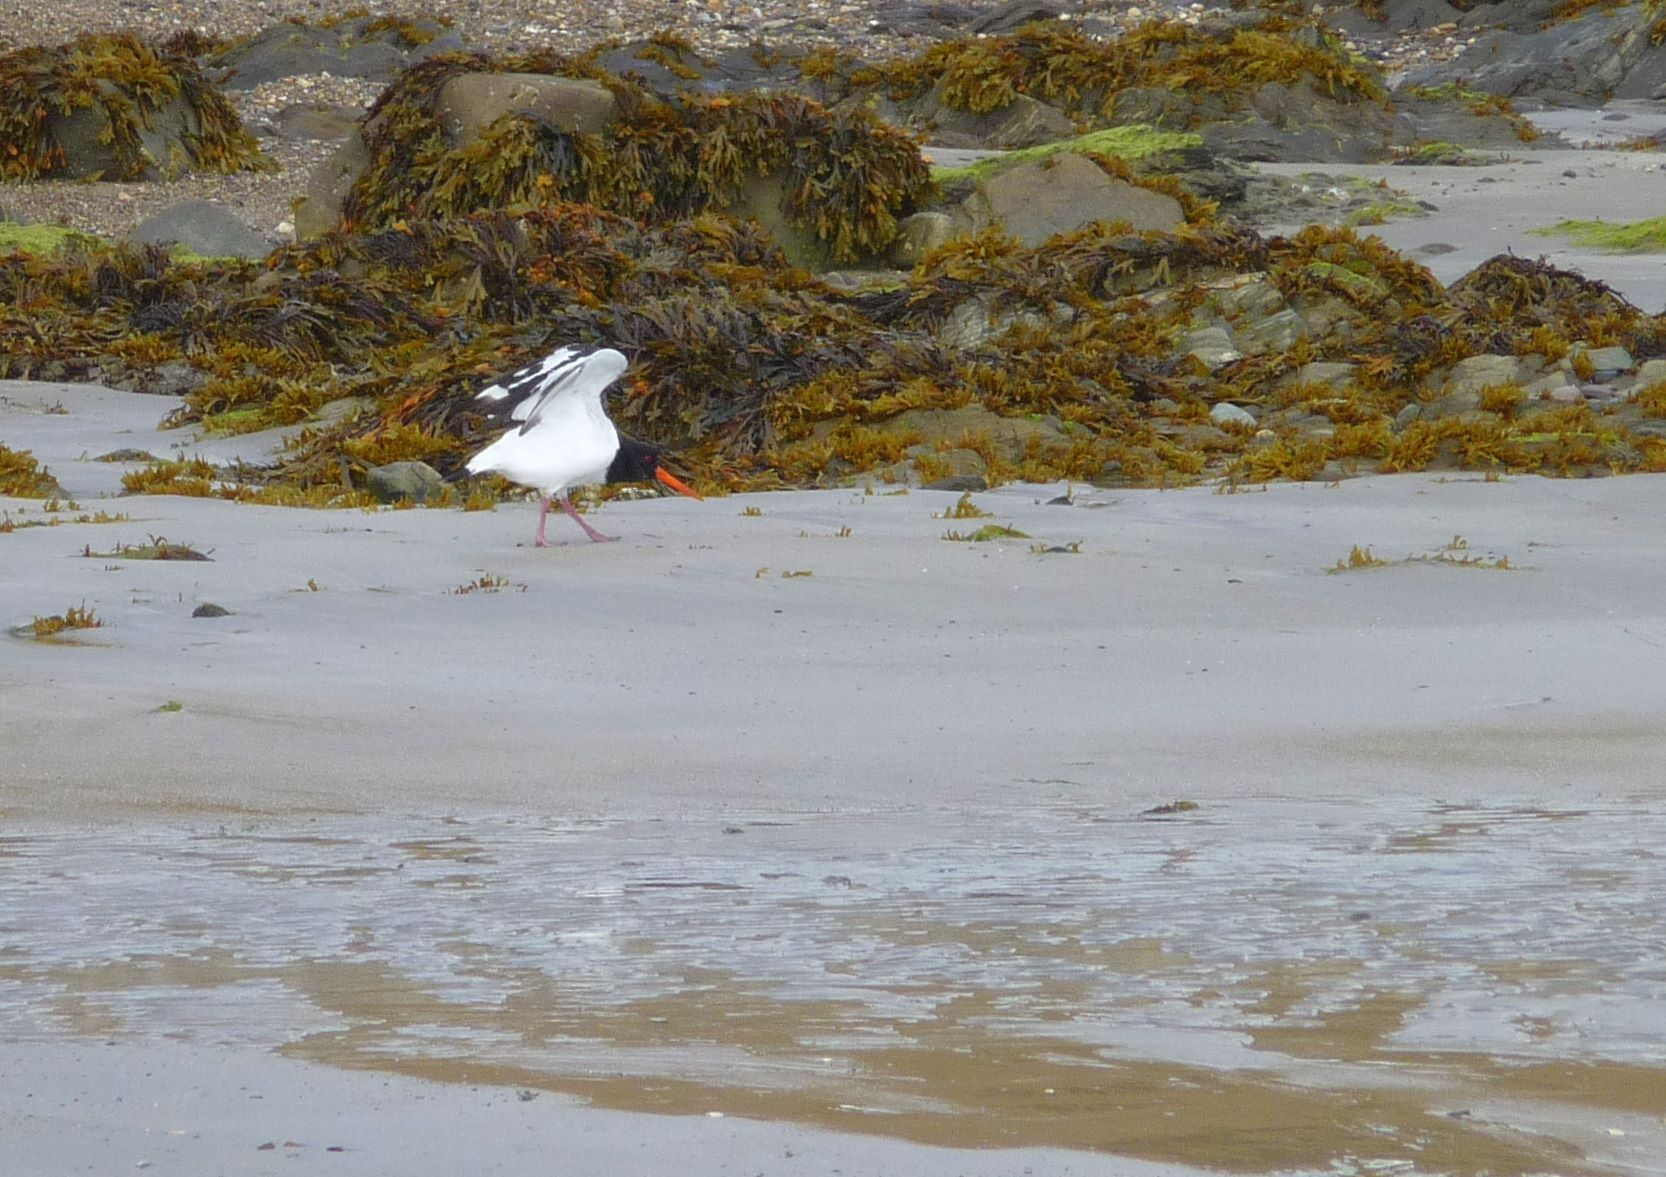 An black and white bird with a red bill on a beach